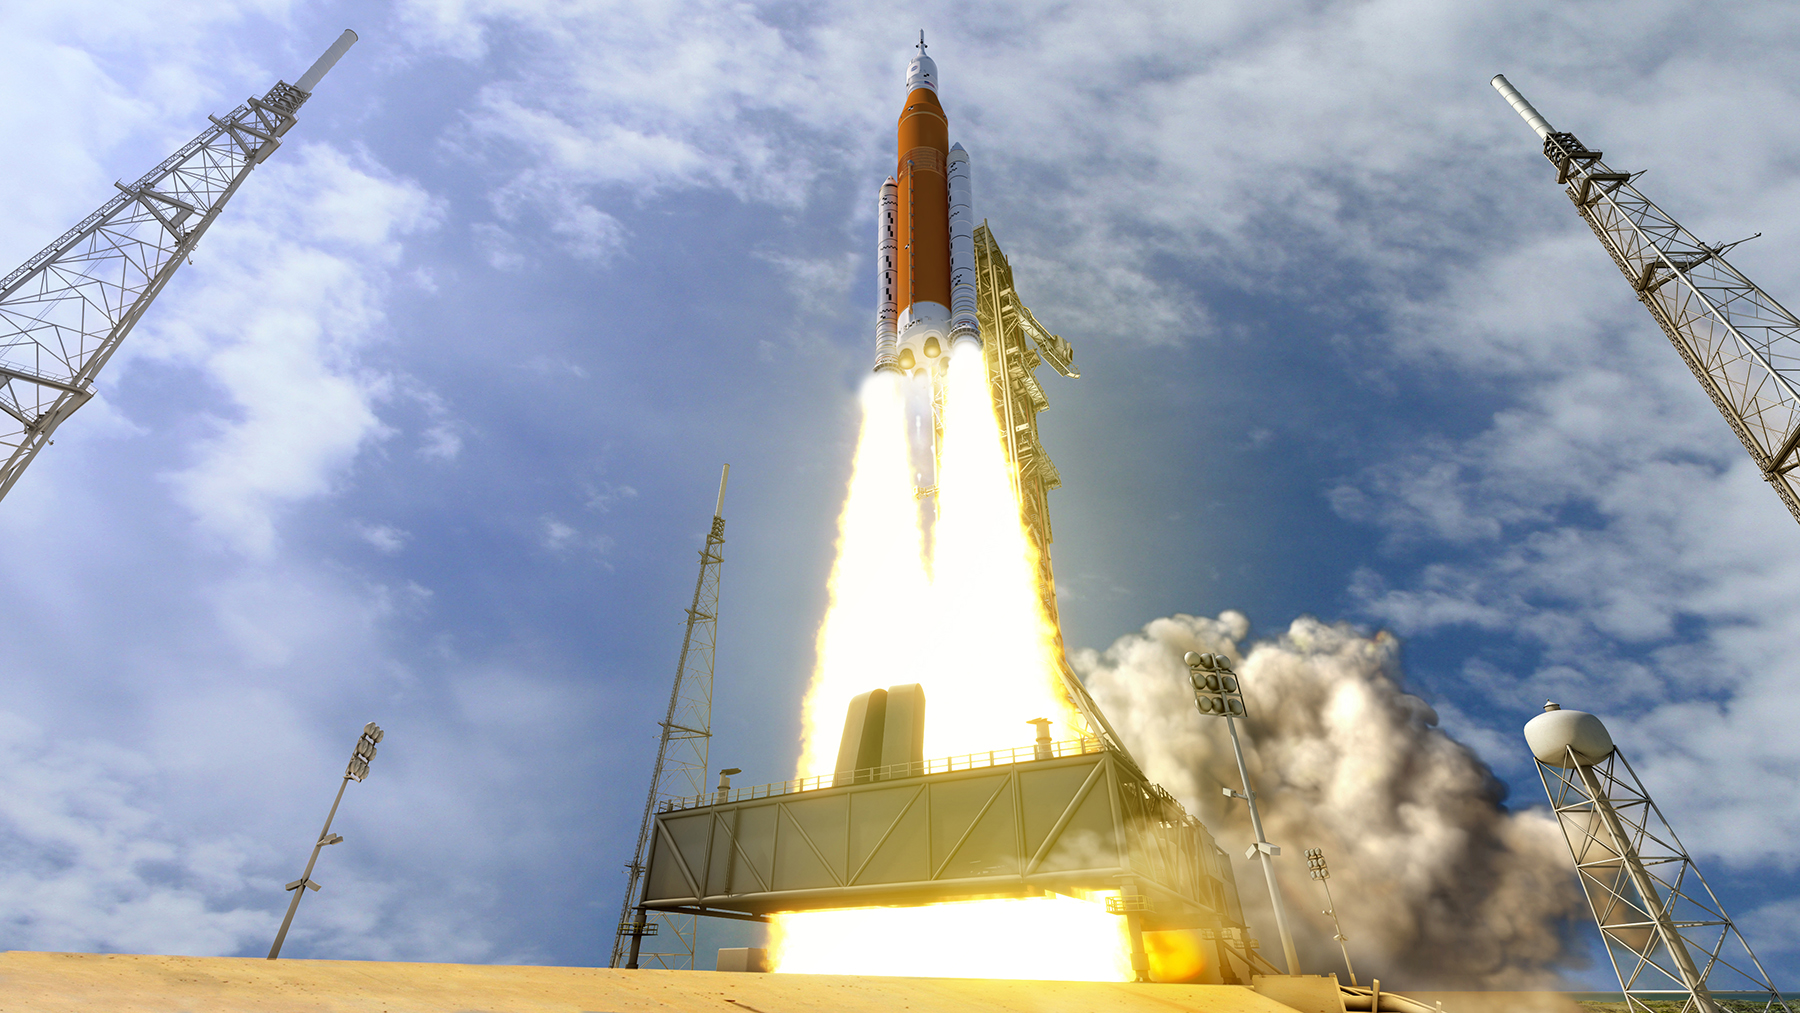 NASA uses water blast to test Space Launch System NASA uses water blast to test Space Launch System new foto